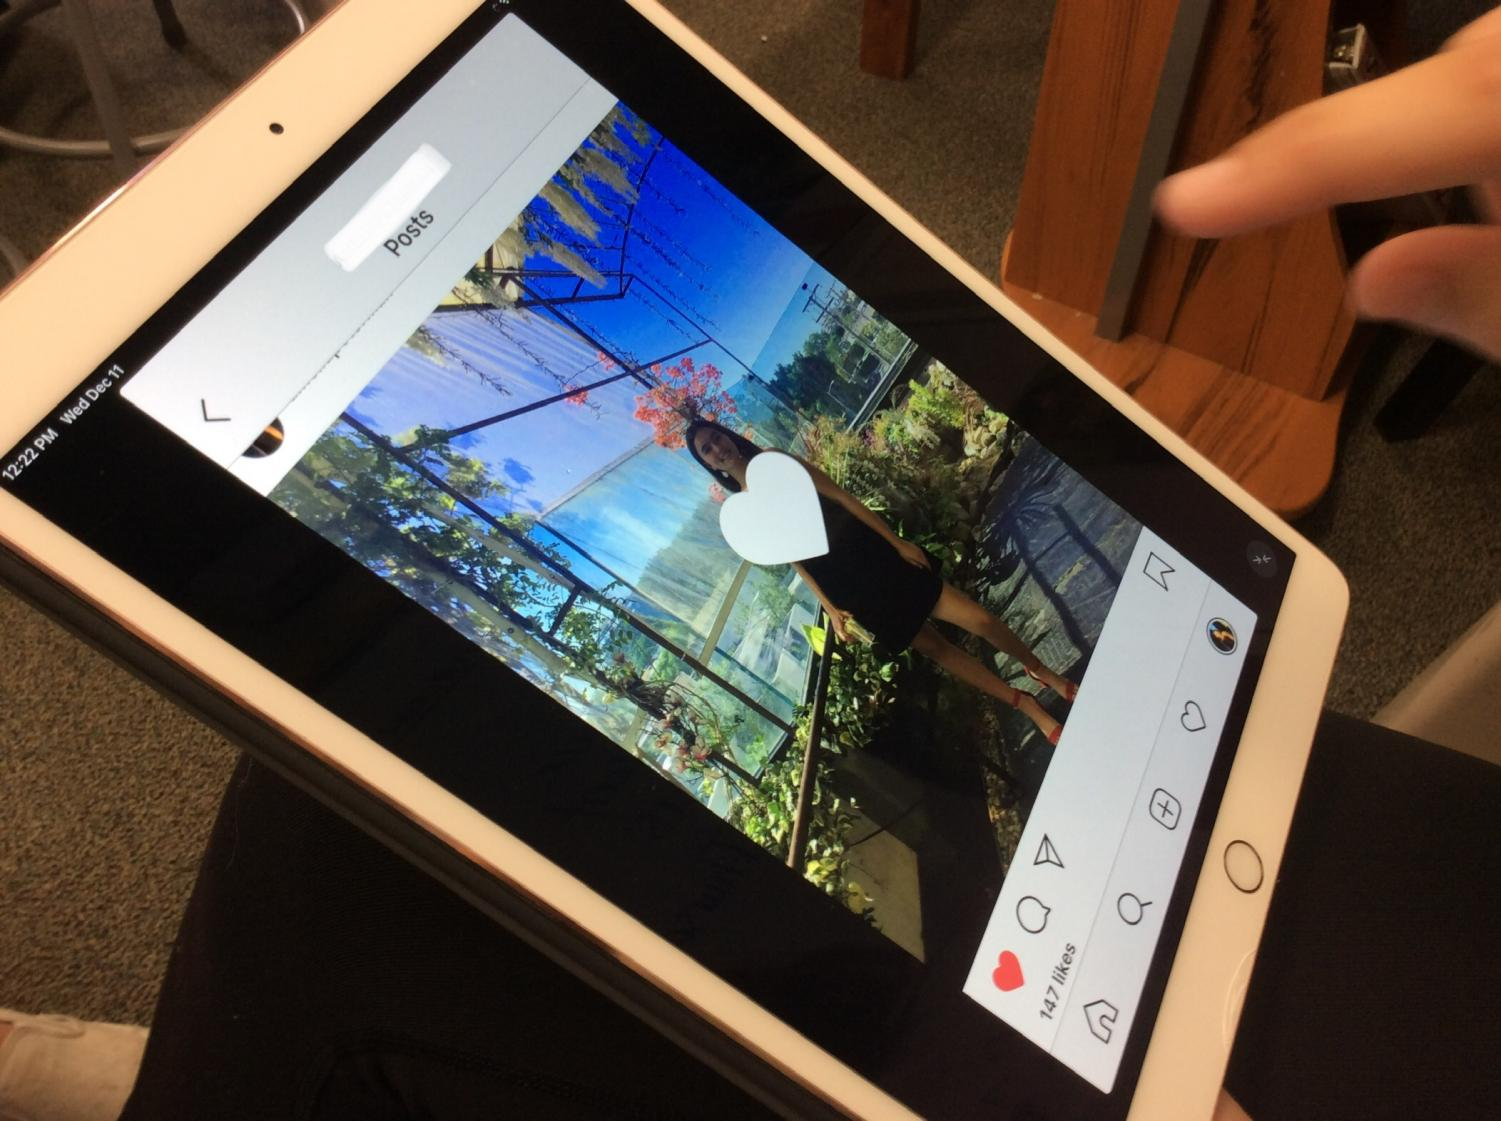 An MBMS student likes a photo on Instagram.